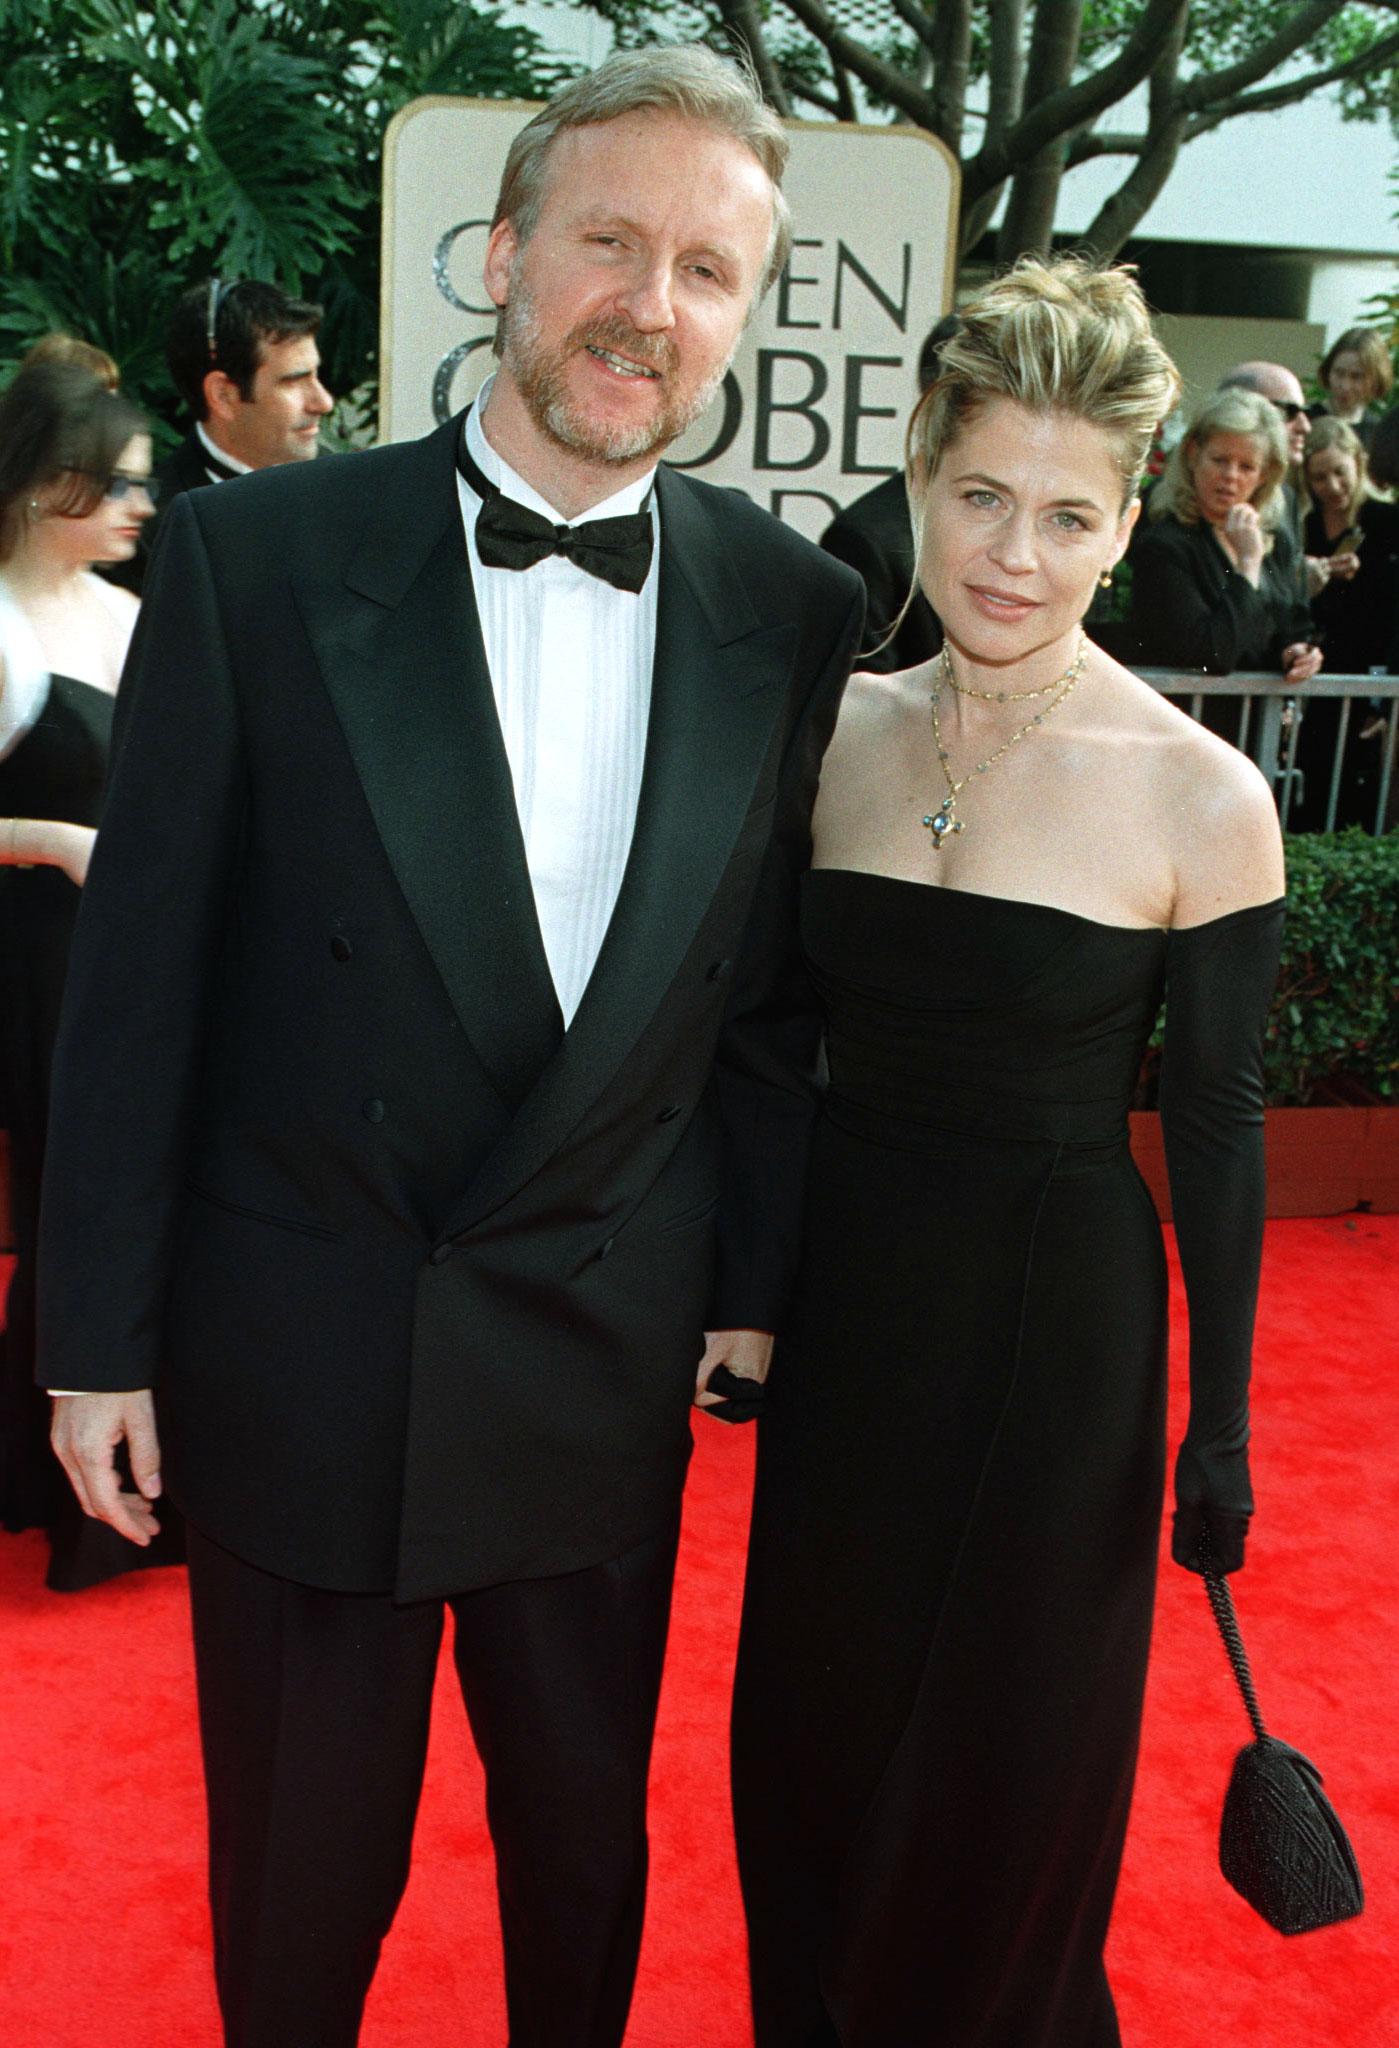 "James Cameron and his wife Linda Hamilton arrive for the 55th annual Golden Globe Awards in Beverly Hills, January 18. The awards, sponsored by the Hollywood Foreign Press Association, honors excellence in film and television. Cameron's film ""Titanic"" is nominated for numerous awards. Hamilton was his star in the ""Terminator"" series. - RTXIMB8"